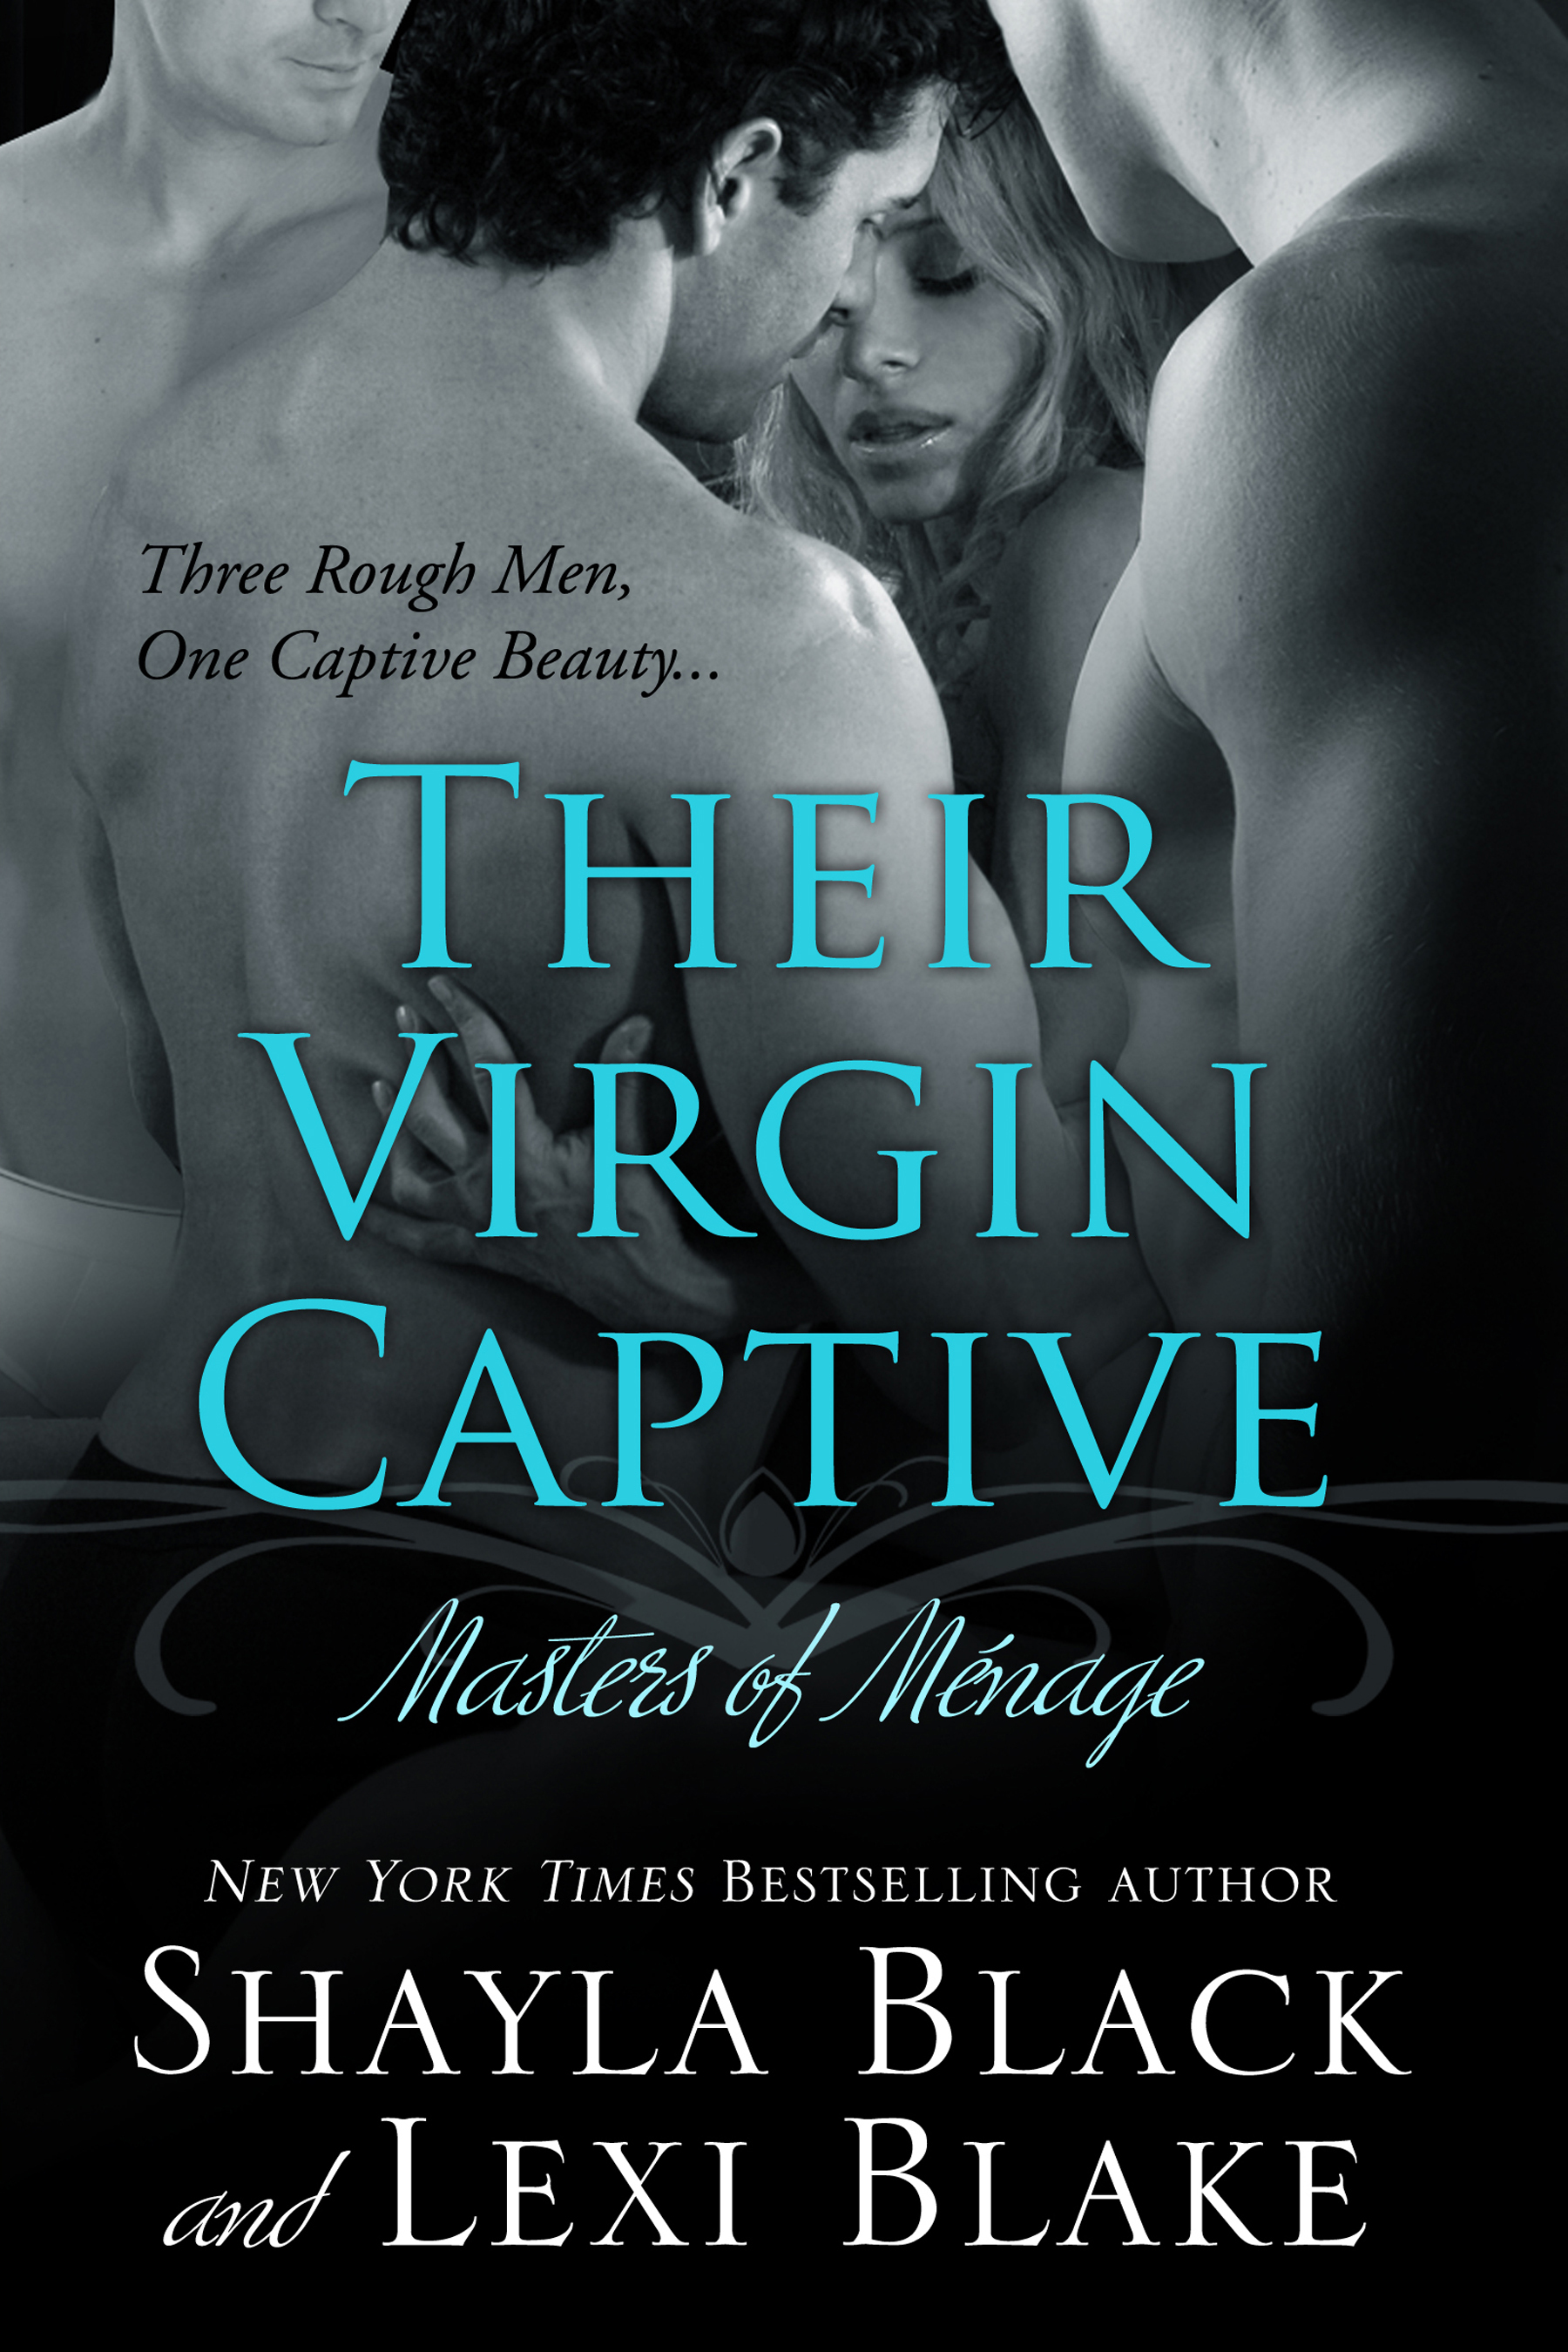 Shayla Black Lexi Blake - Their Virgin Captive, Masters of Ménage, Book 1